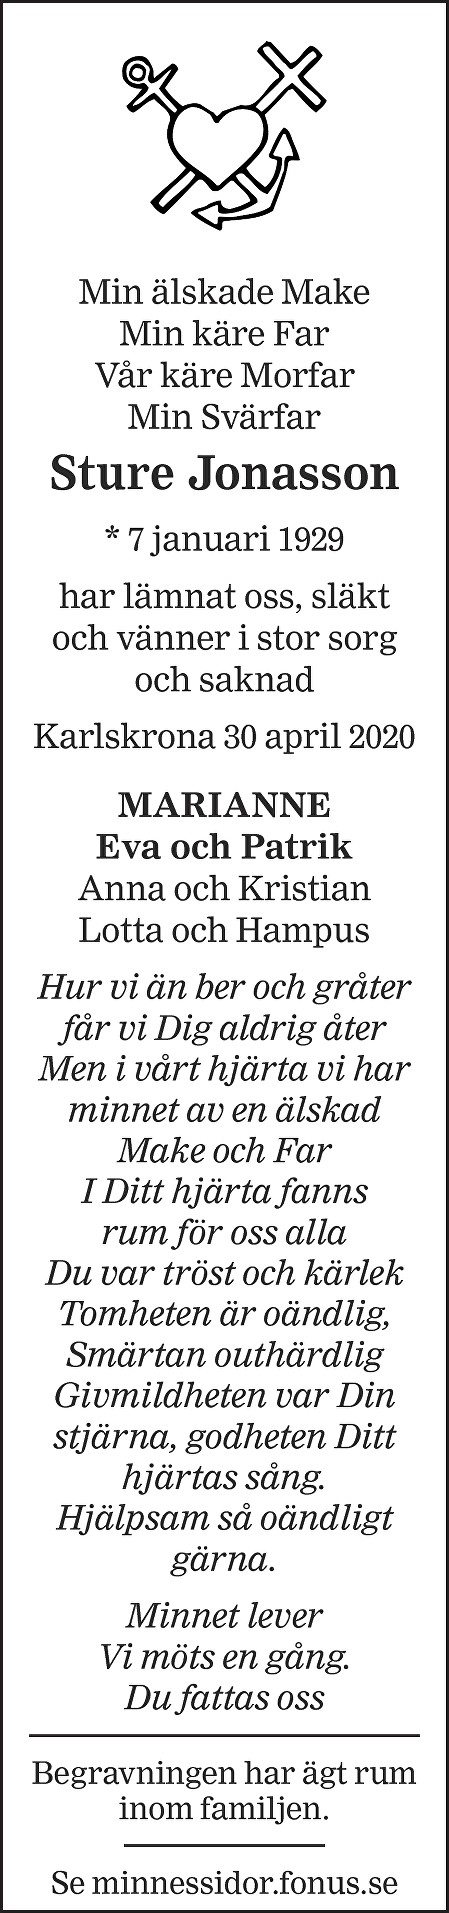 Sture Jonasson Death notice